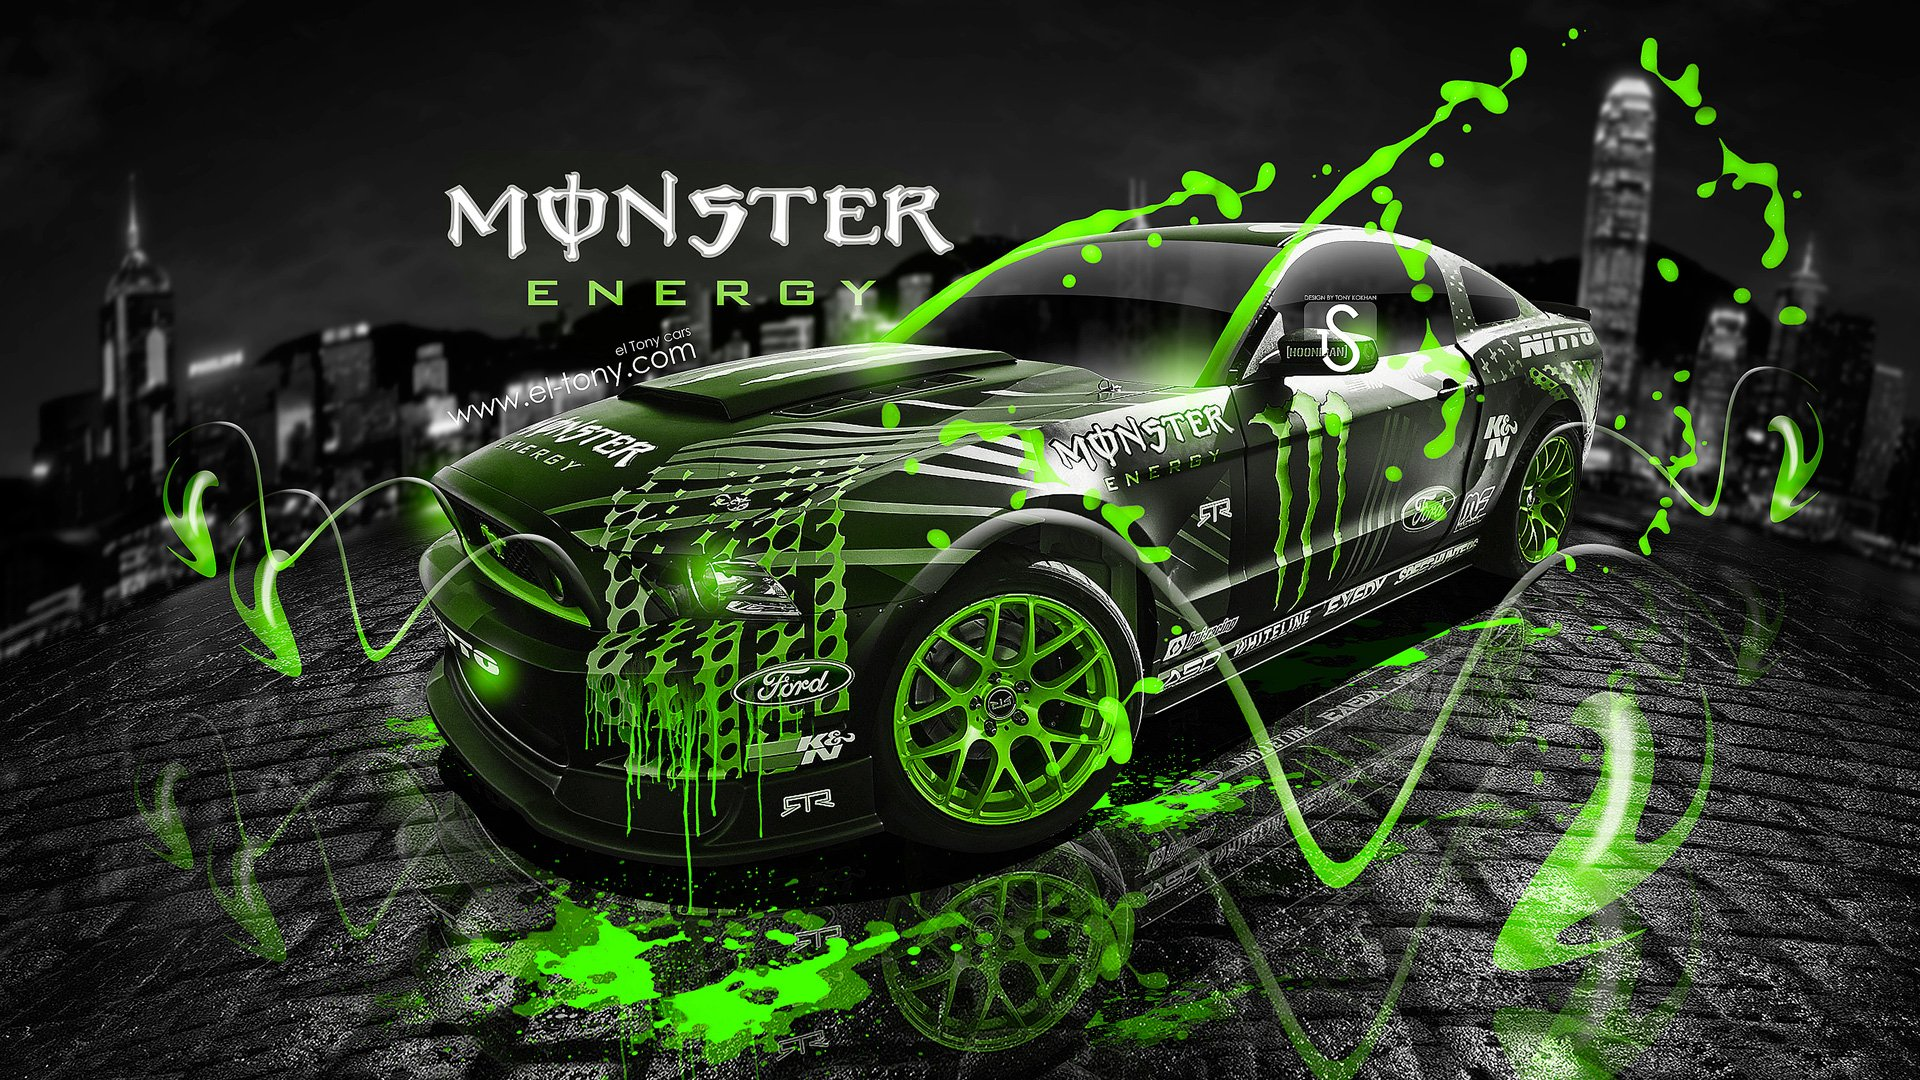 Perfect Ford Mustang Rtr Monster Energy Drift Race Racing Wallpaper 1920x1080  529976 Wallpaperup .